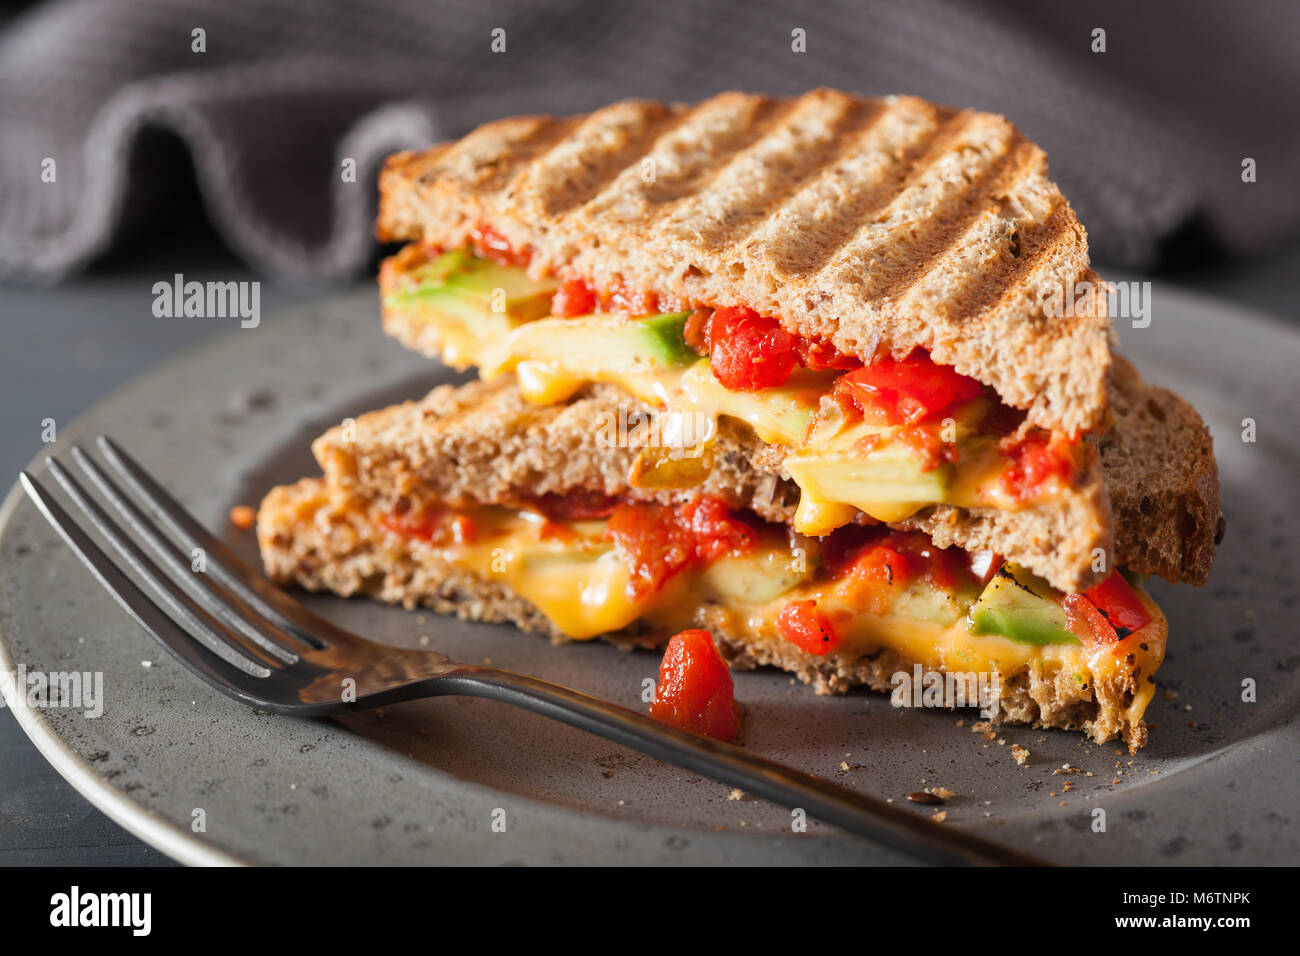 grilled cheese sandwich with avocado and tomato - Stock Image